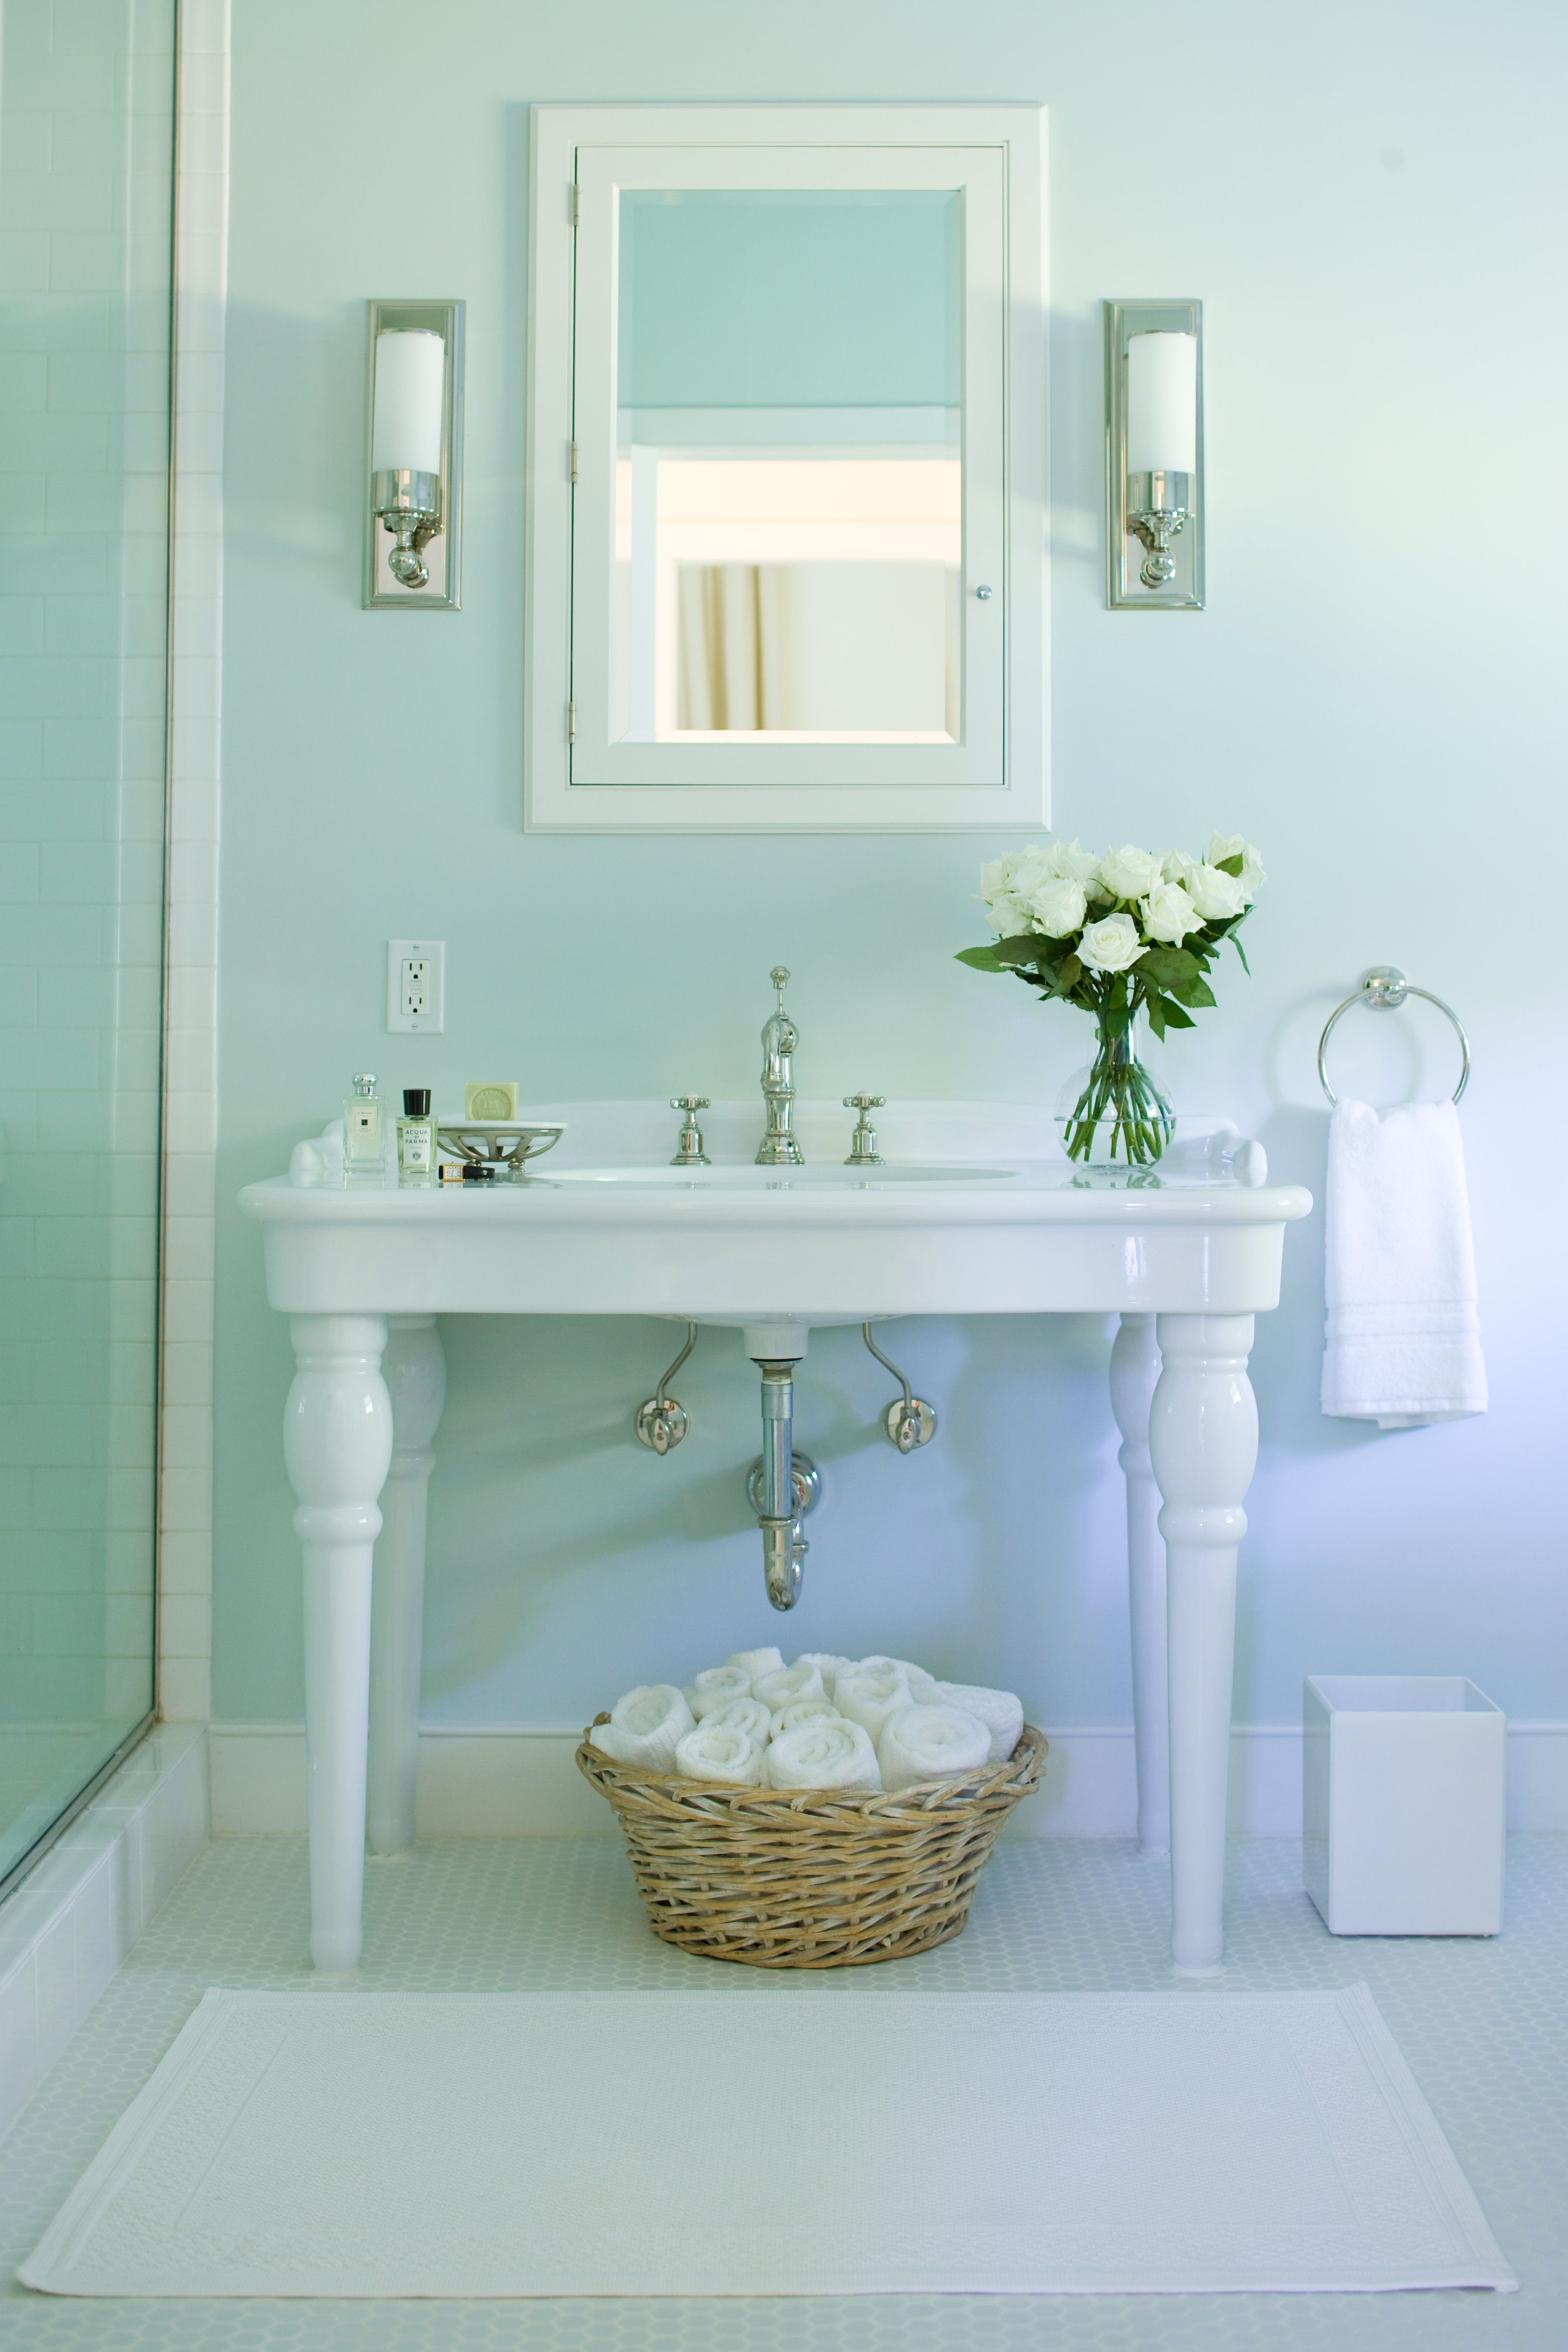 Master bath vanity bathrooms powder rooms pinterest for Powder room bathroom vanities